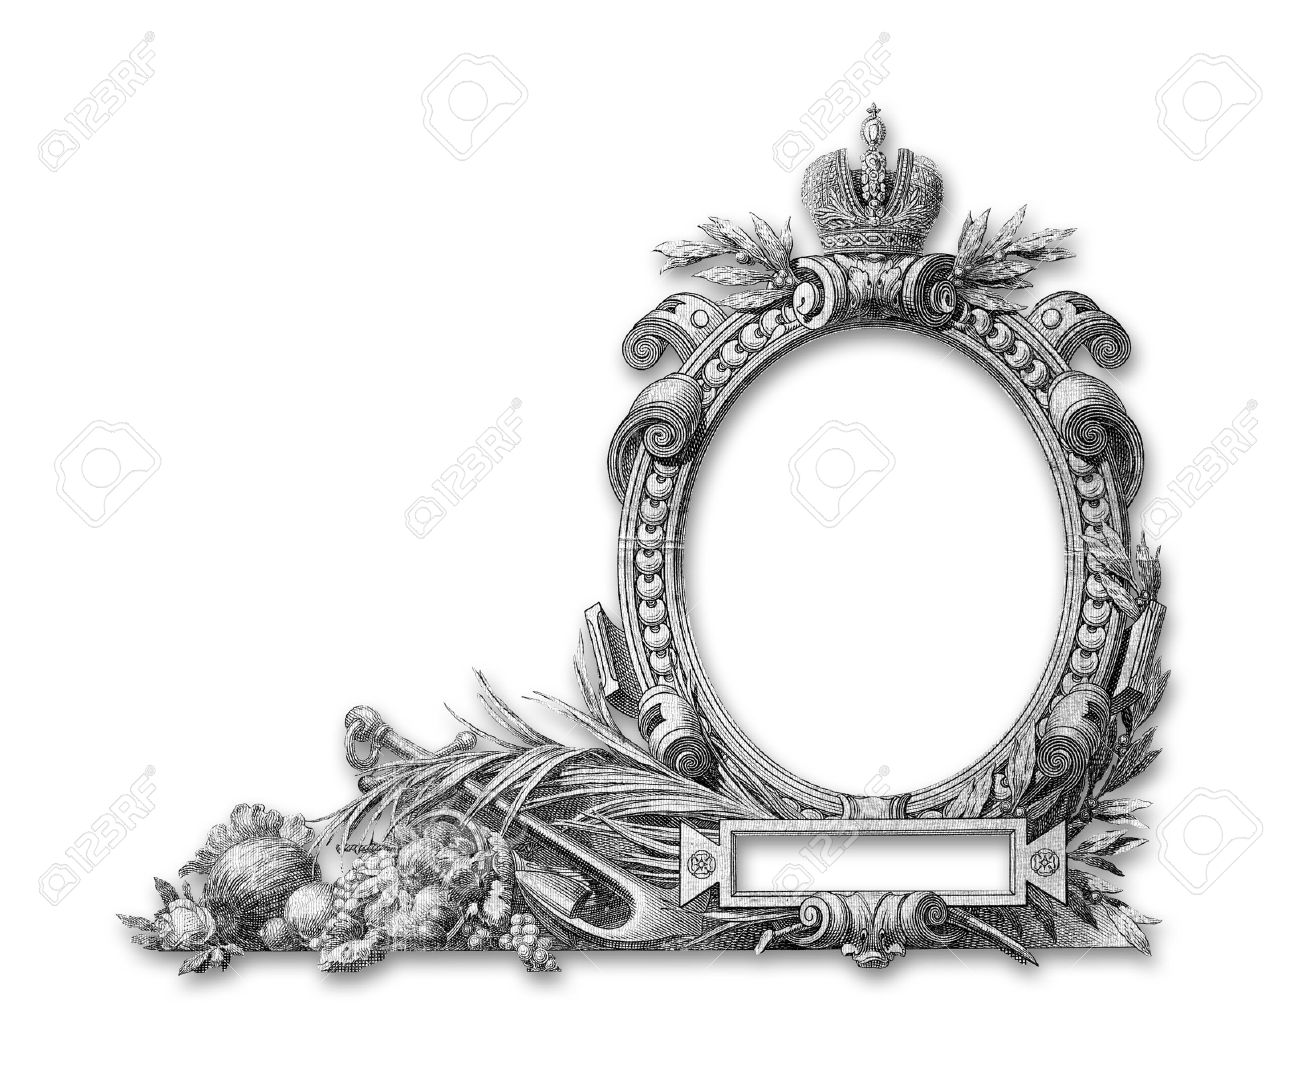 Sterling Victorian Frame On A Background Stock Photo Victorian Frame On A Background Stock Small Victorian Frames Victorian Frames Vector houzz 01 Victorian Picture Frames